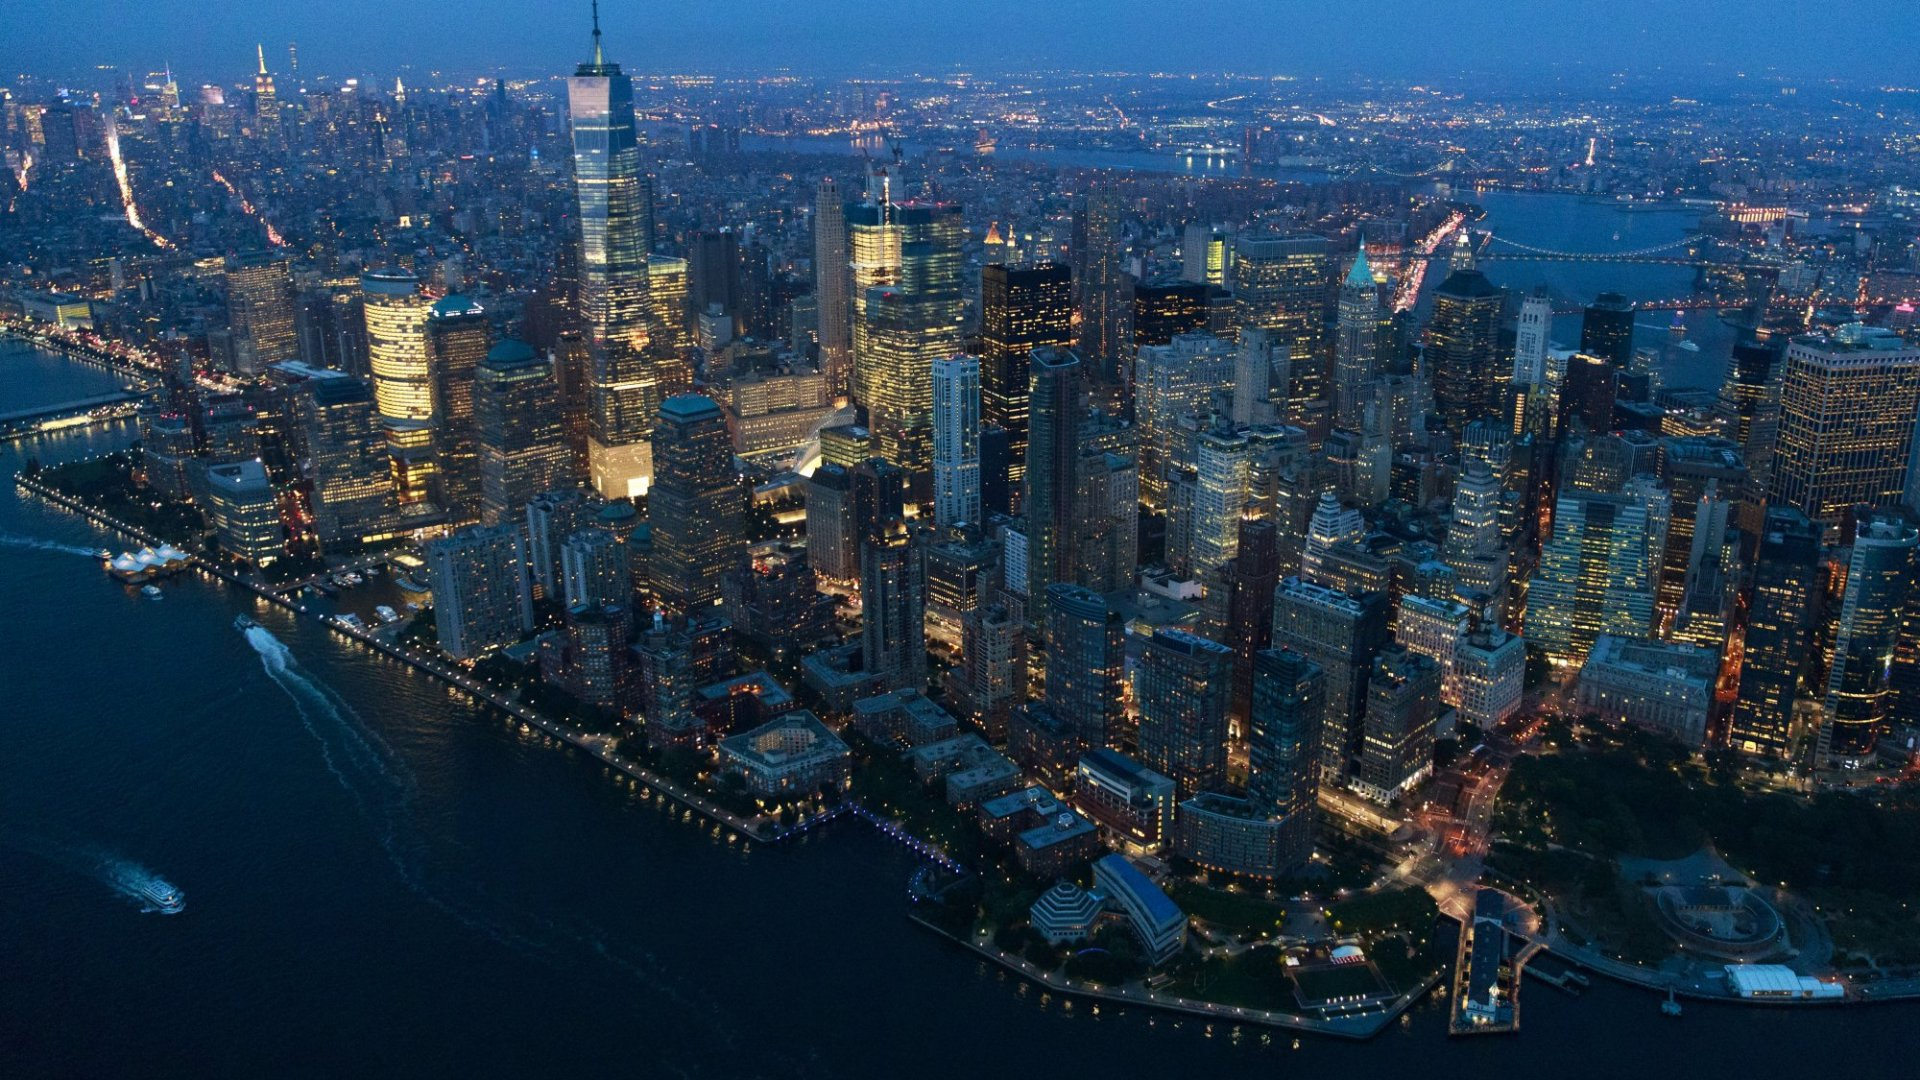 Amazon vs New York: 3 Things Most People Won't Admit